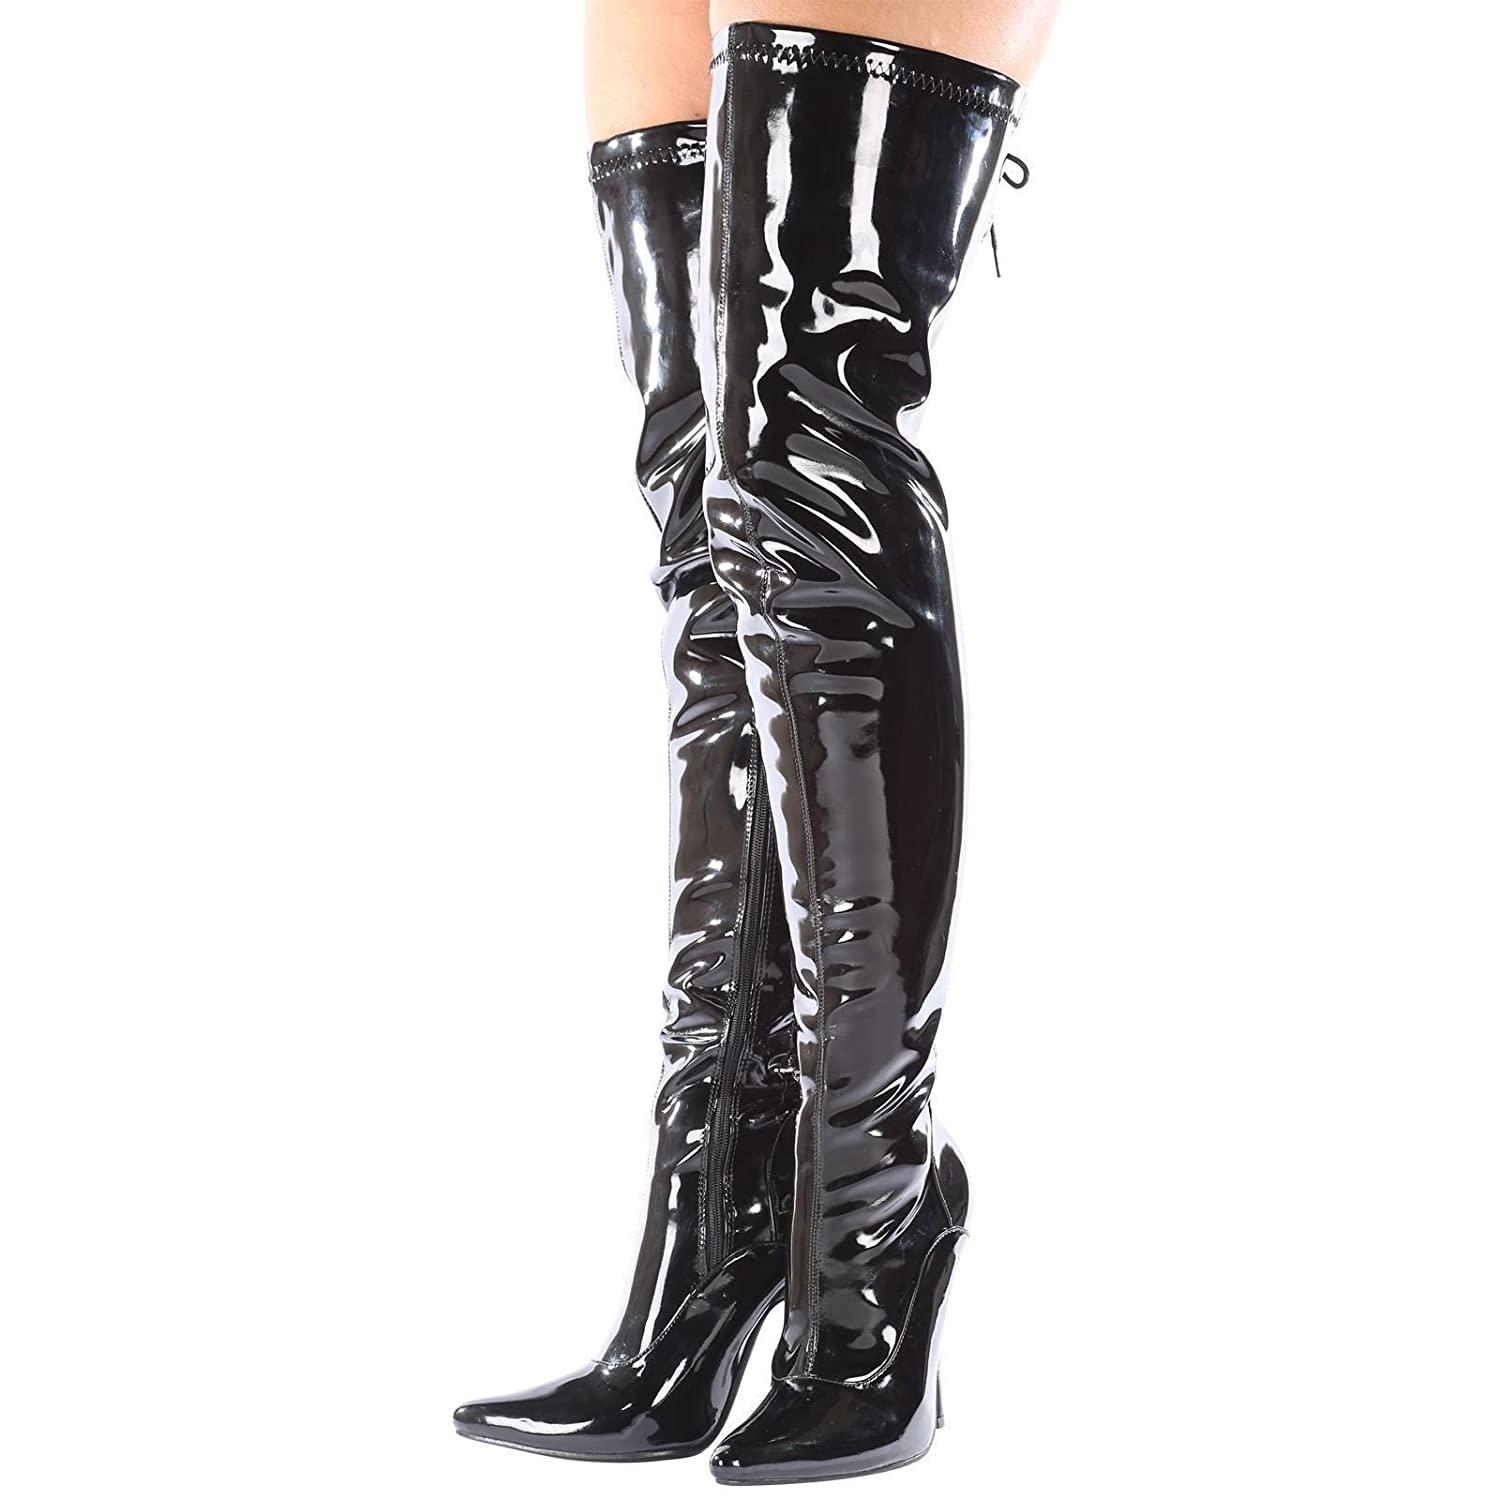 81a31fbd2e56 Gizelle New Womens Ladies Sexy Thigh HIGH Kinky Fetish Over The Knee  Stiletto Heel Full Hook LACE UP and Side Zip Boots Size UK 4-12 (5